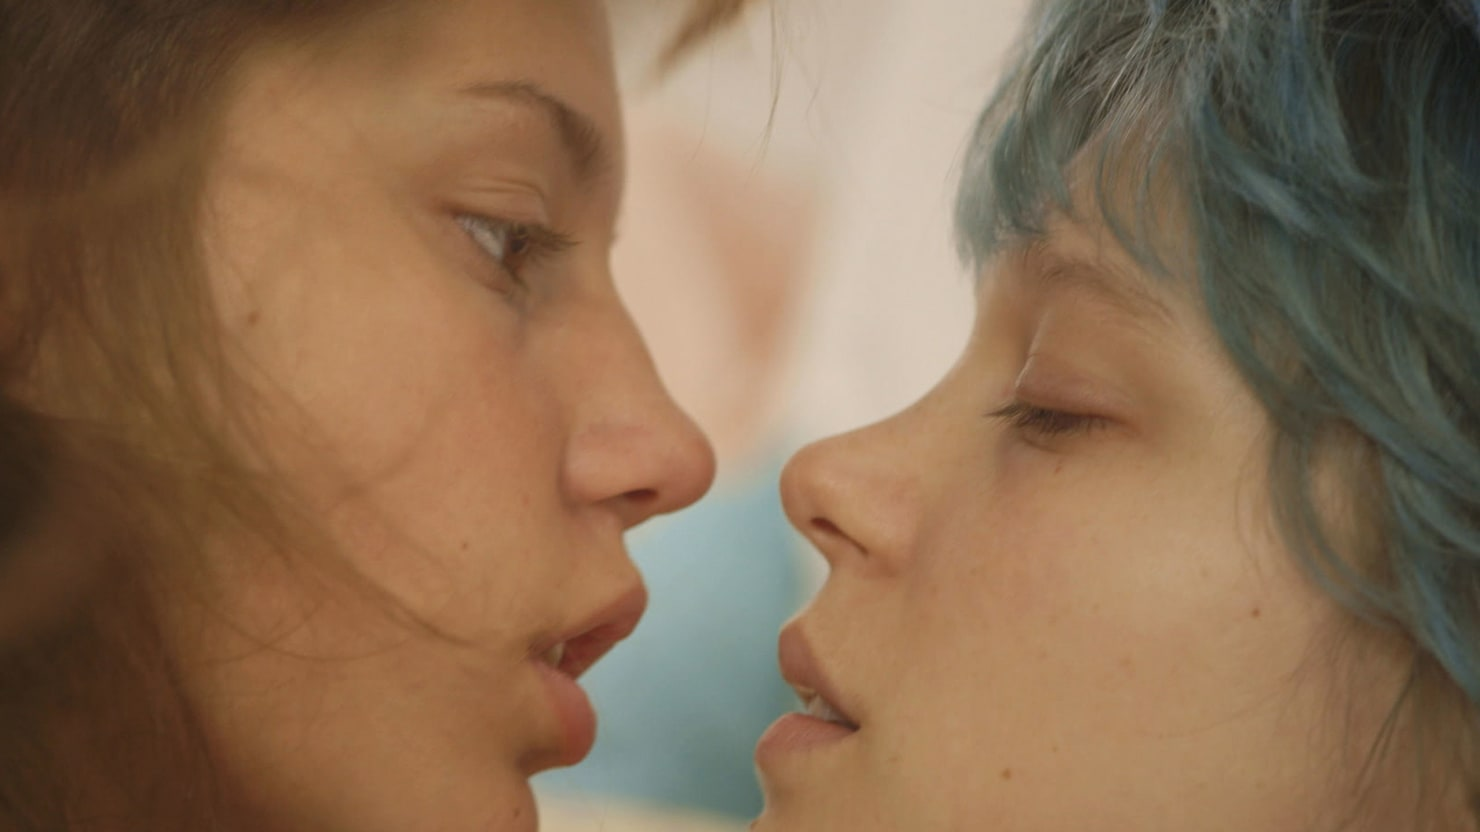 the 10 best movie sex scenes of 2013: 'blue is the warmest color